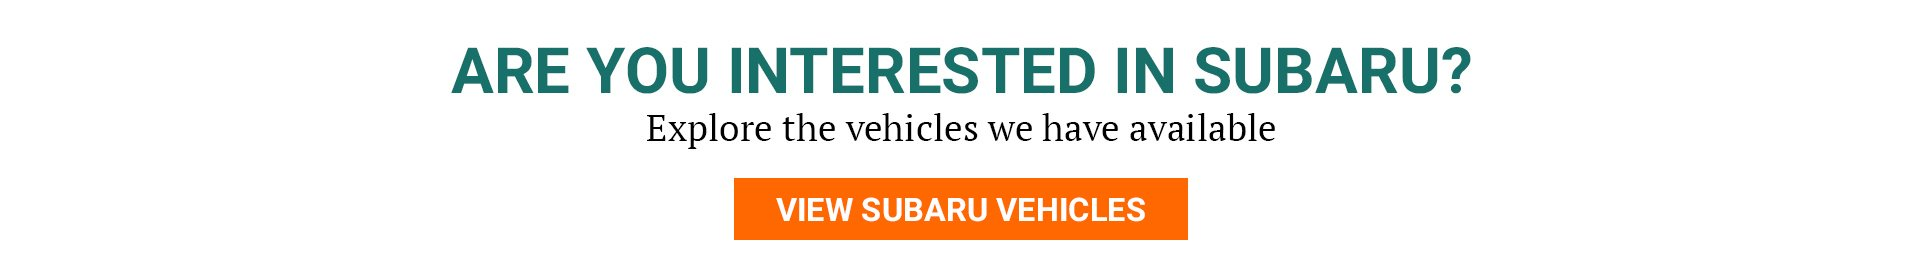 Have a look at the vehicles we have on offer from Subaru